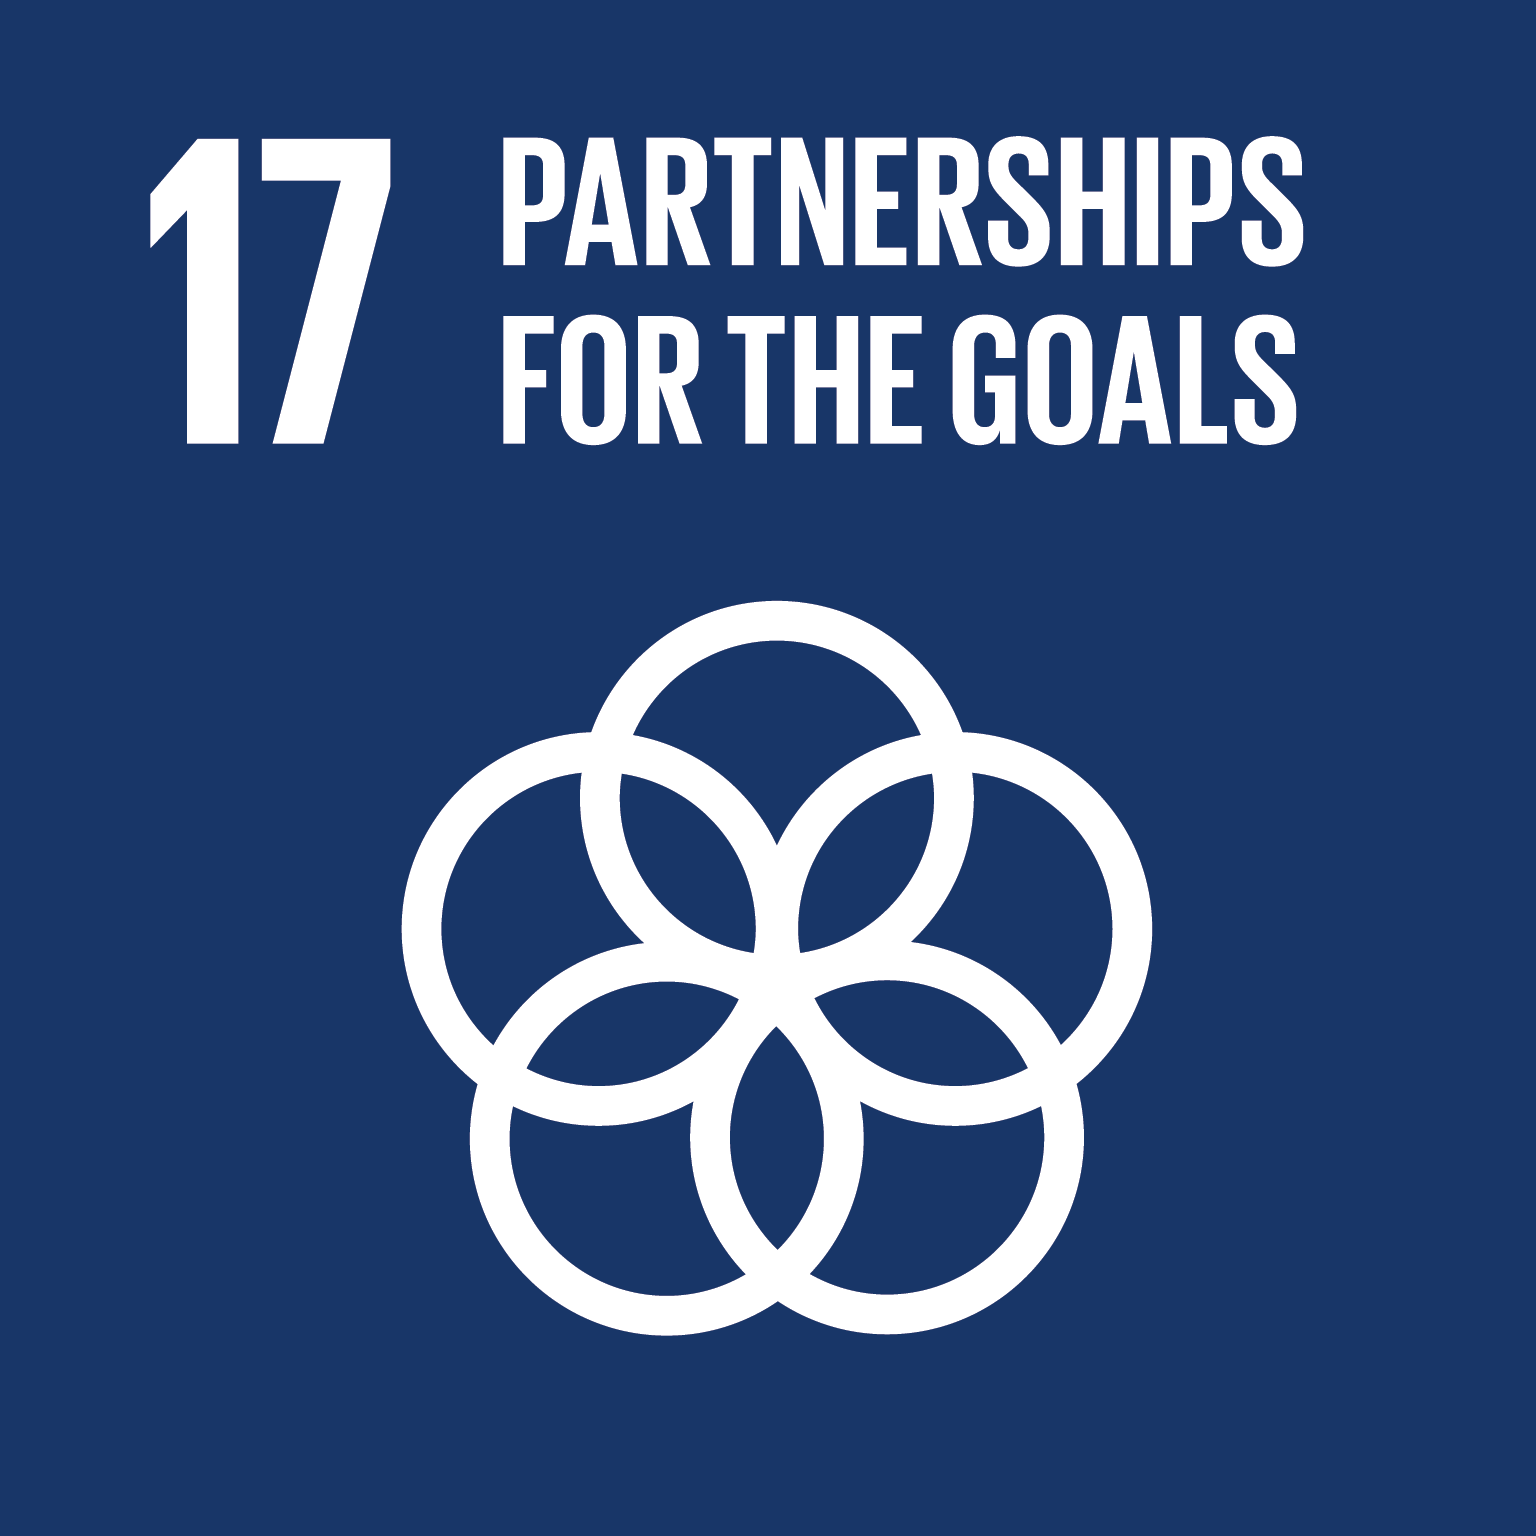 Partnerships for the goals logo.